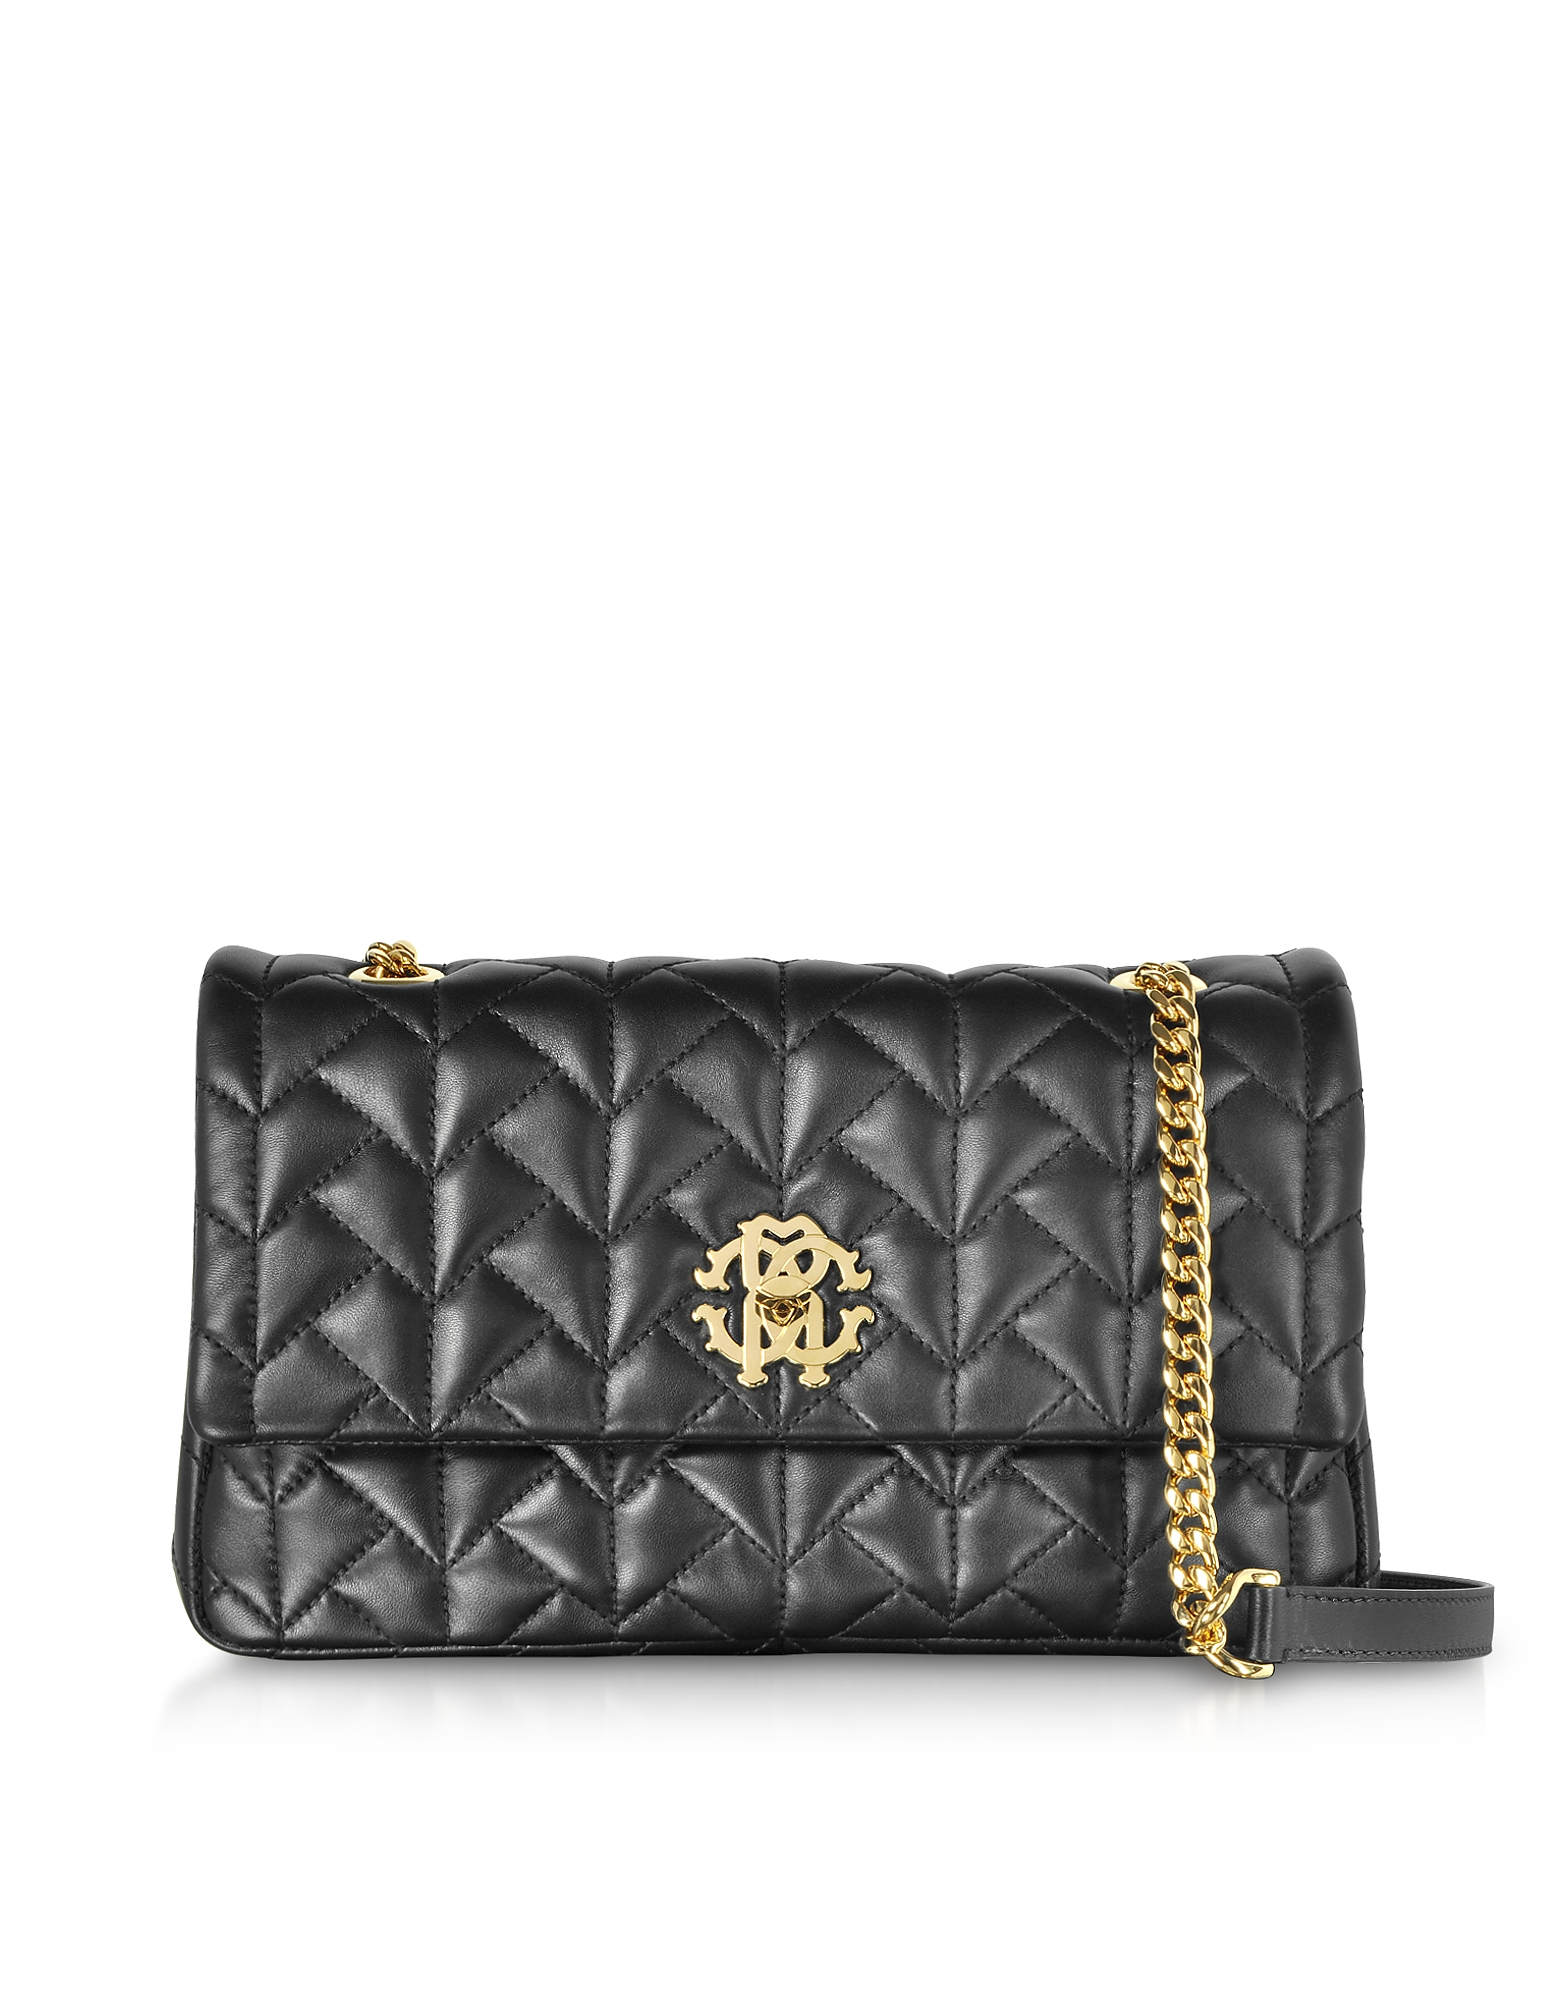 Roberto Cavalli Handbags, Black Quilted Leather Shoulder Bag